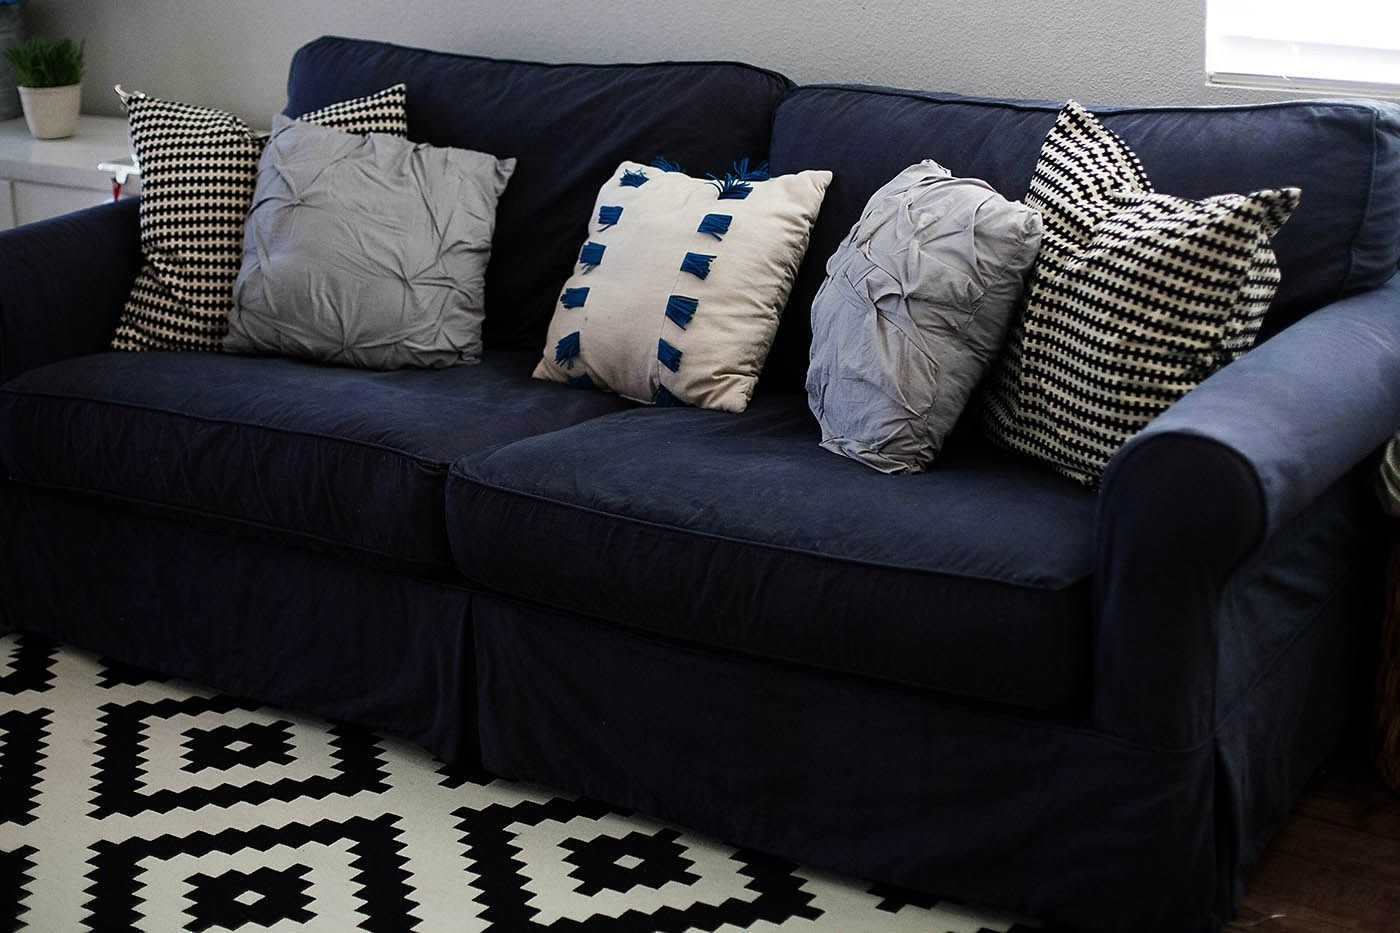 How To Dye A Sofa Slipcover All For The Memories In 2020 Diy Furniture Couch Blue Couch Covers Blue Couch Slipcover